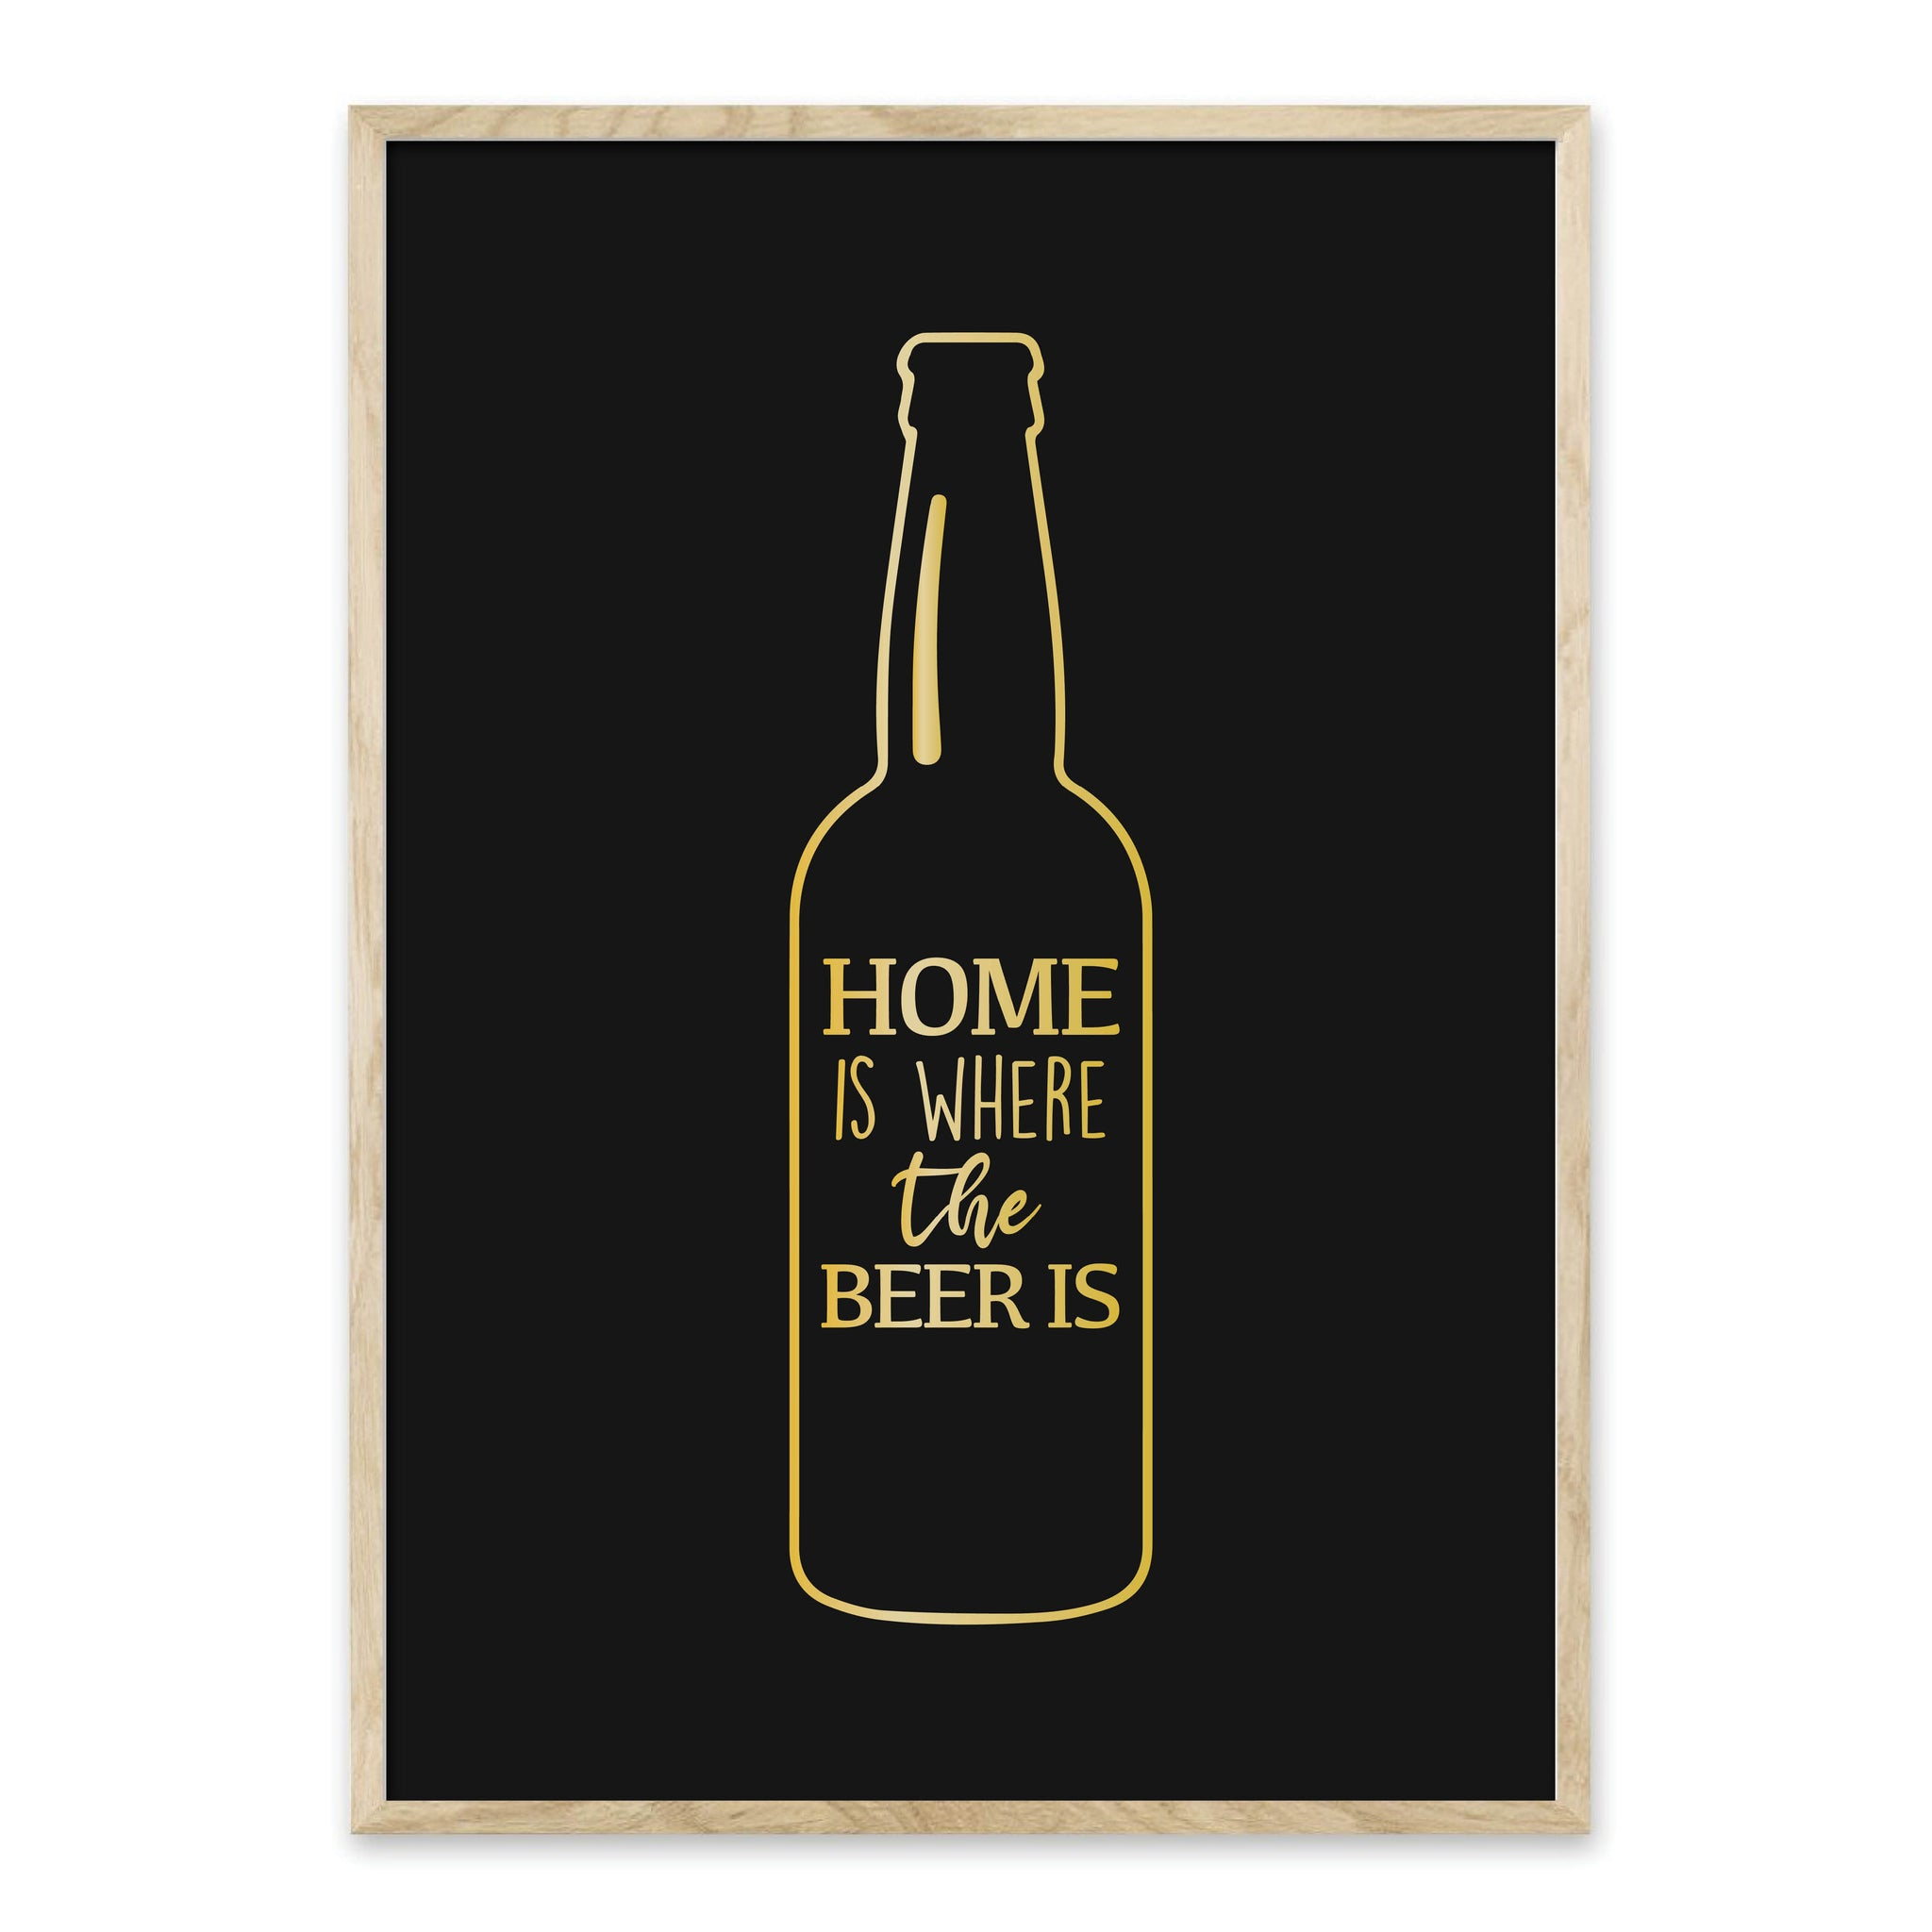 Home is where the beer is - plakat